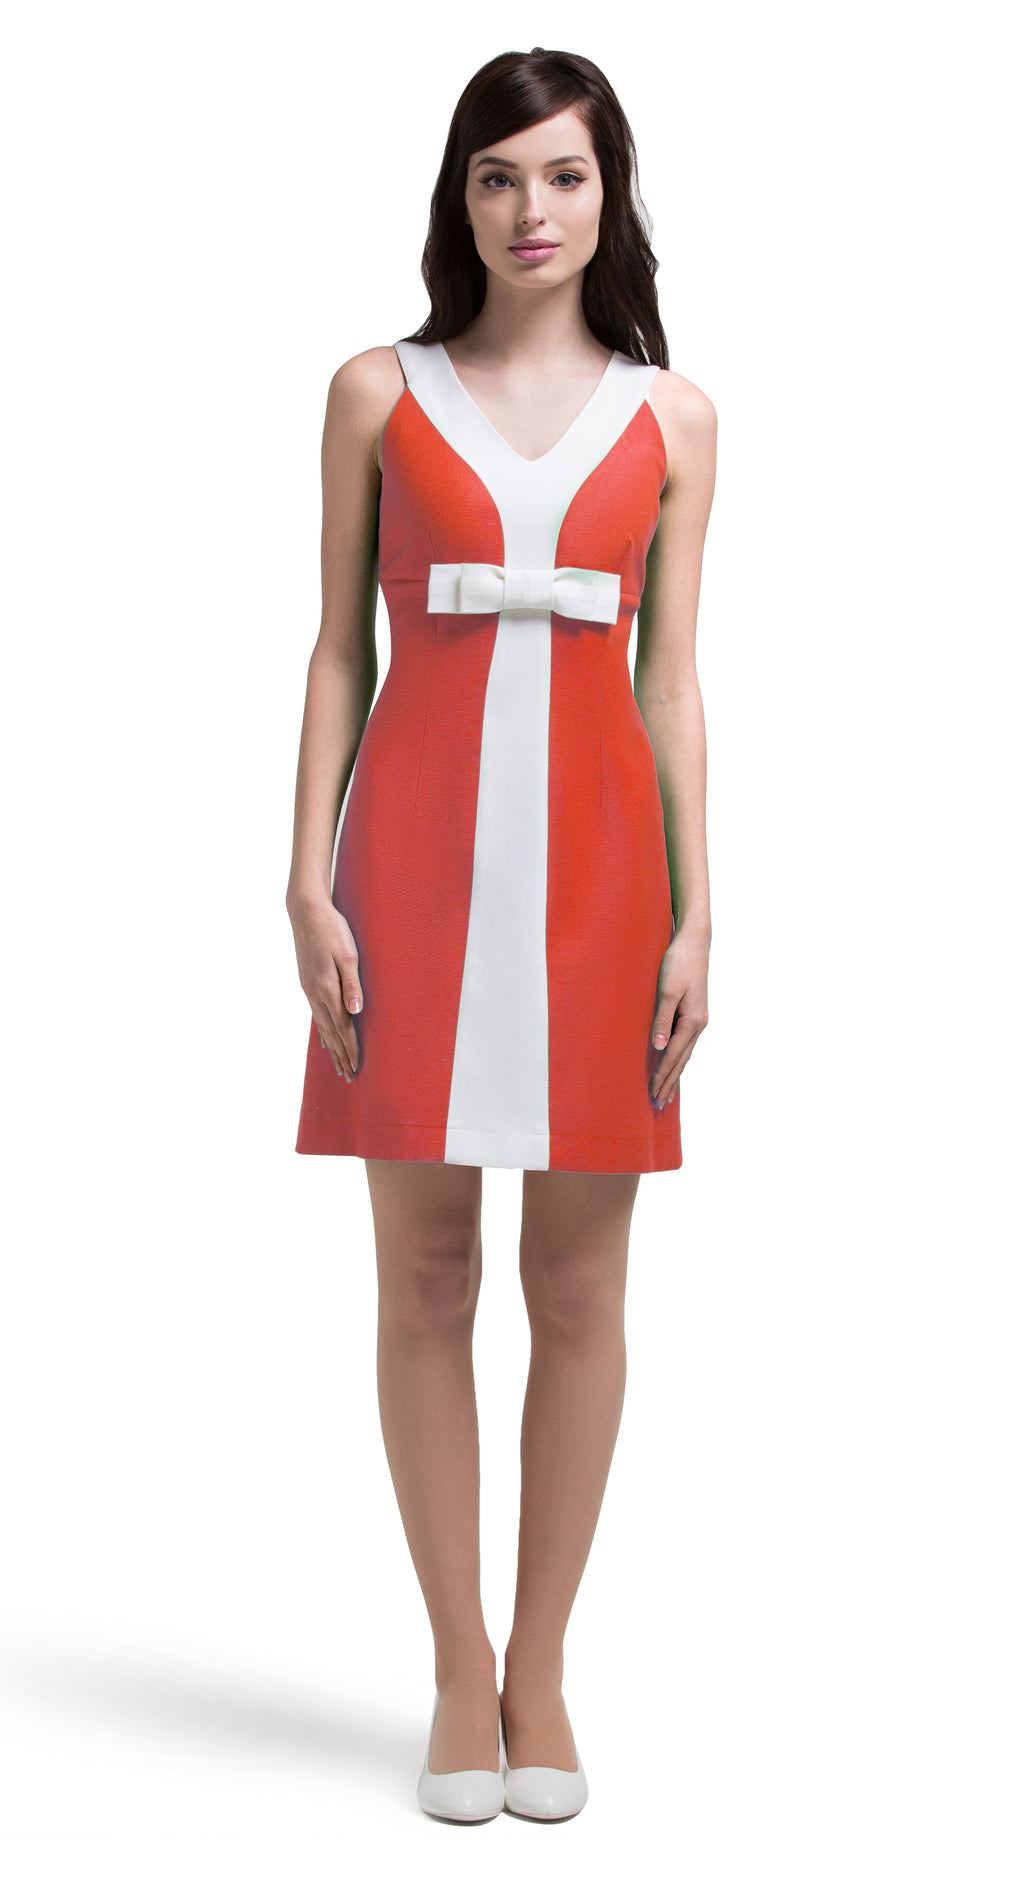 A light, comfortable and confident little entrance maker which is ideal for summer terraces, festivals and big nights out. This fun, slightly a-line dress, with a contrasting white stripe and bow is available in a lovely coral or apple green Italian cotton.  This v-neck dress has unmistakeable retro influence and immediate mod sharpness.